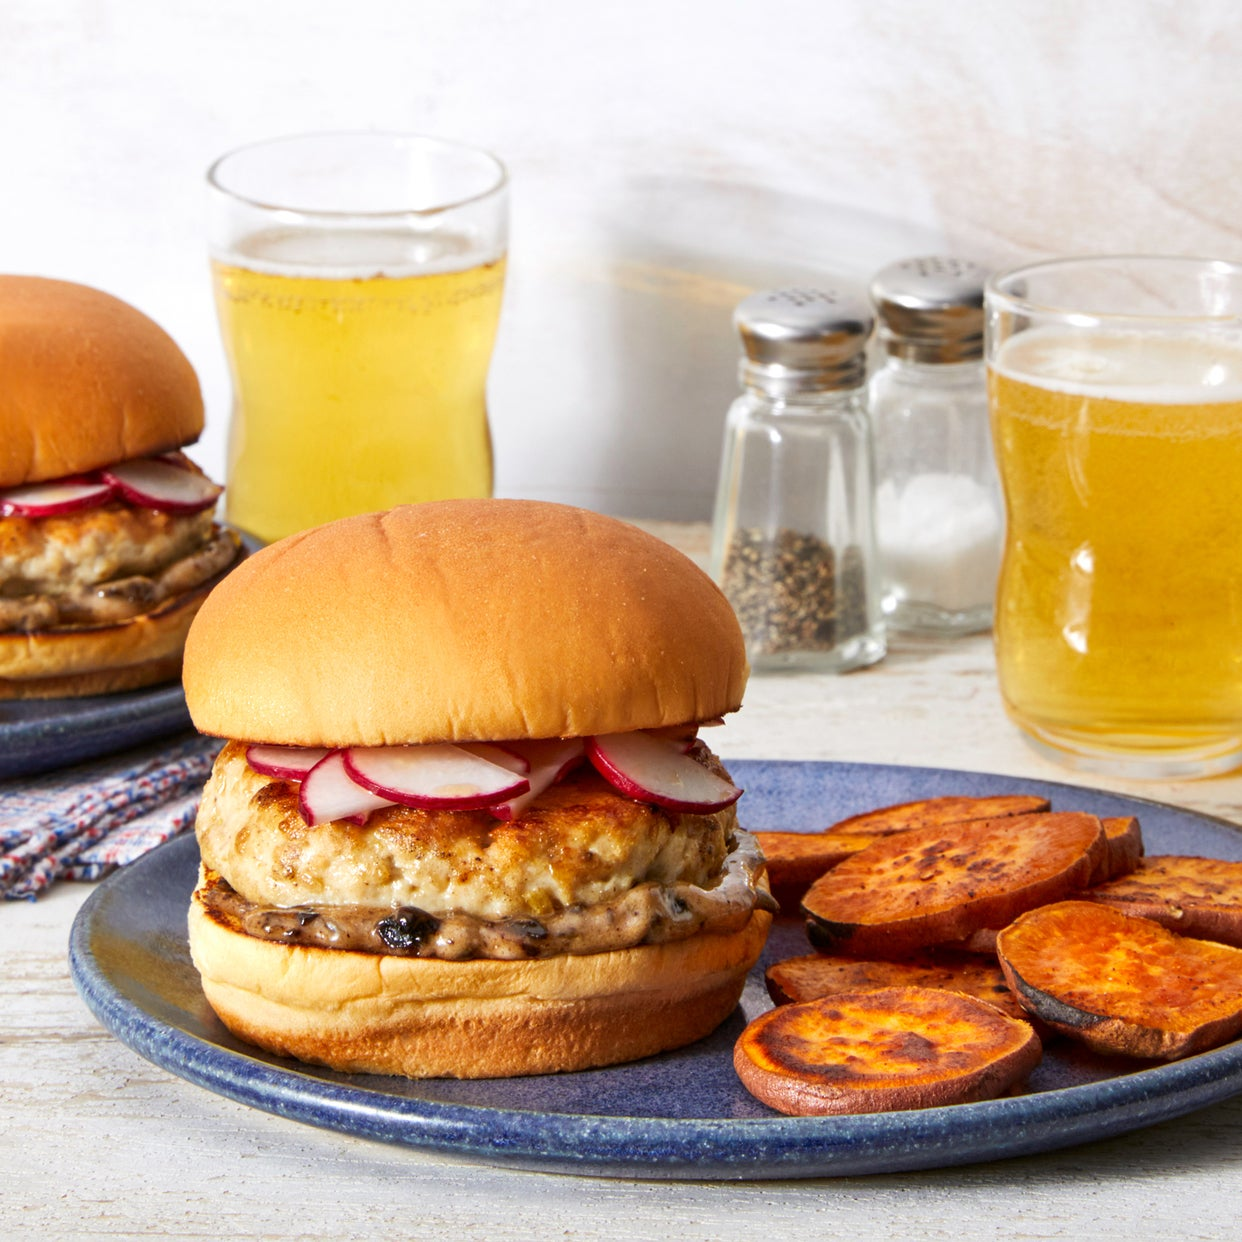 Lemongrass-Ginger Turkey Burgers with Roasted Sweet Potatoes & Black Garlic Mayo